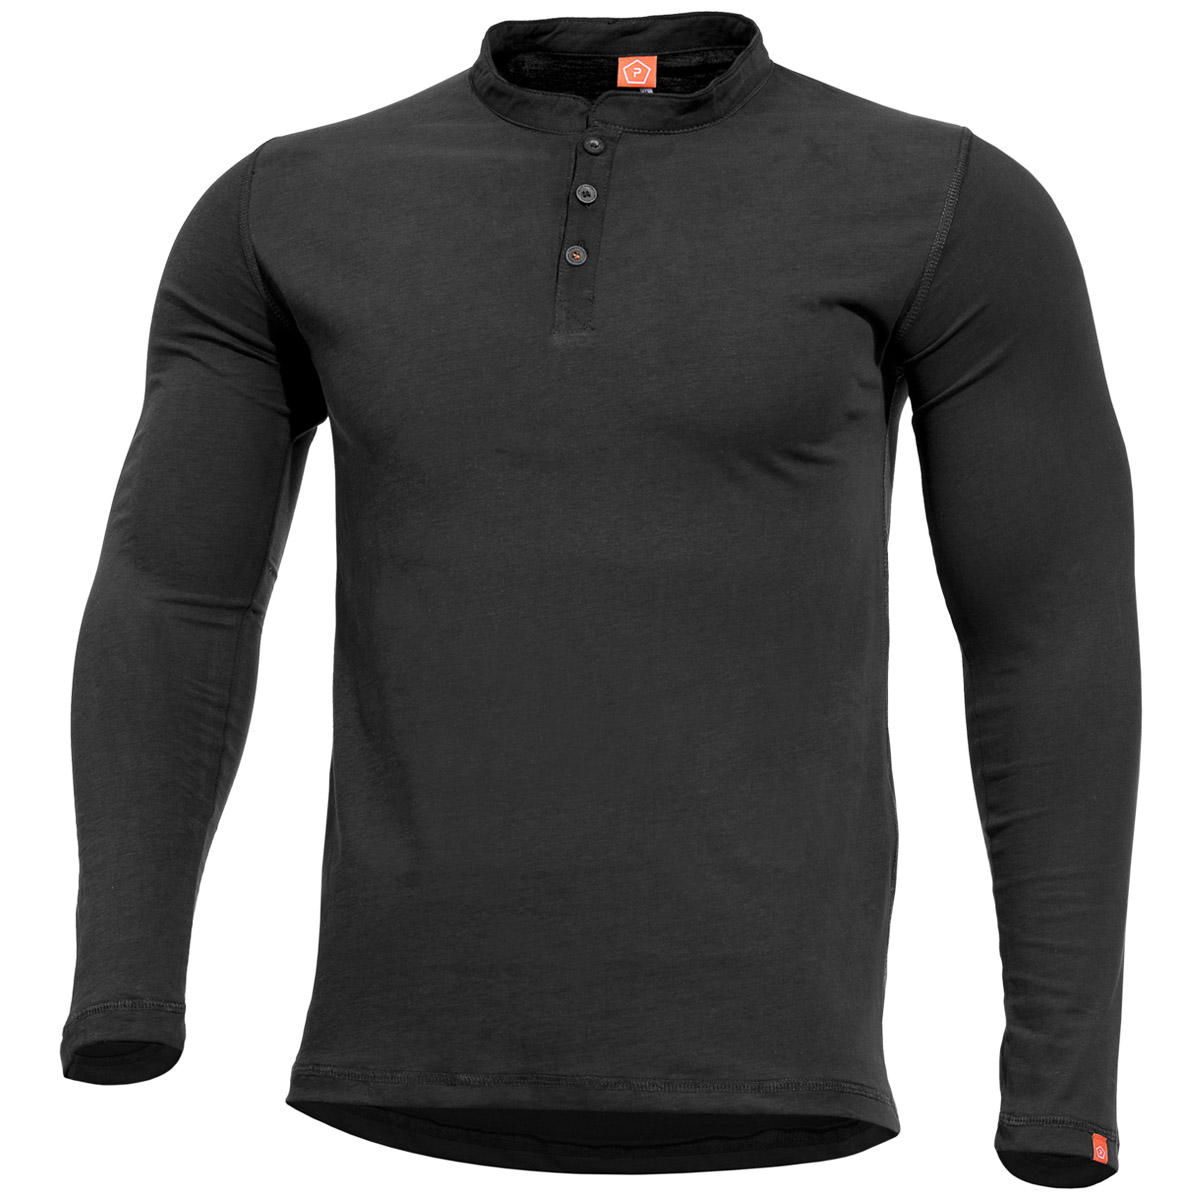 7f7b2a207b26d Details about Pentagon Romeo Henley Shirt Police Security Tactical Sport  Mens Cotton Top Black